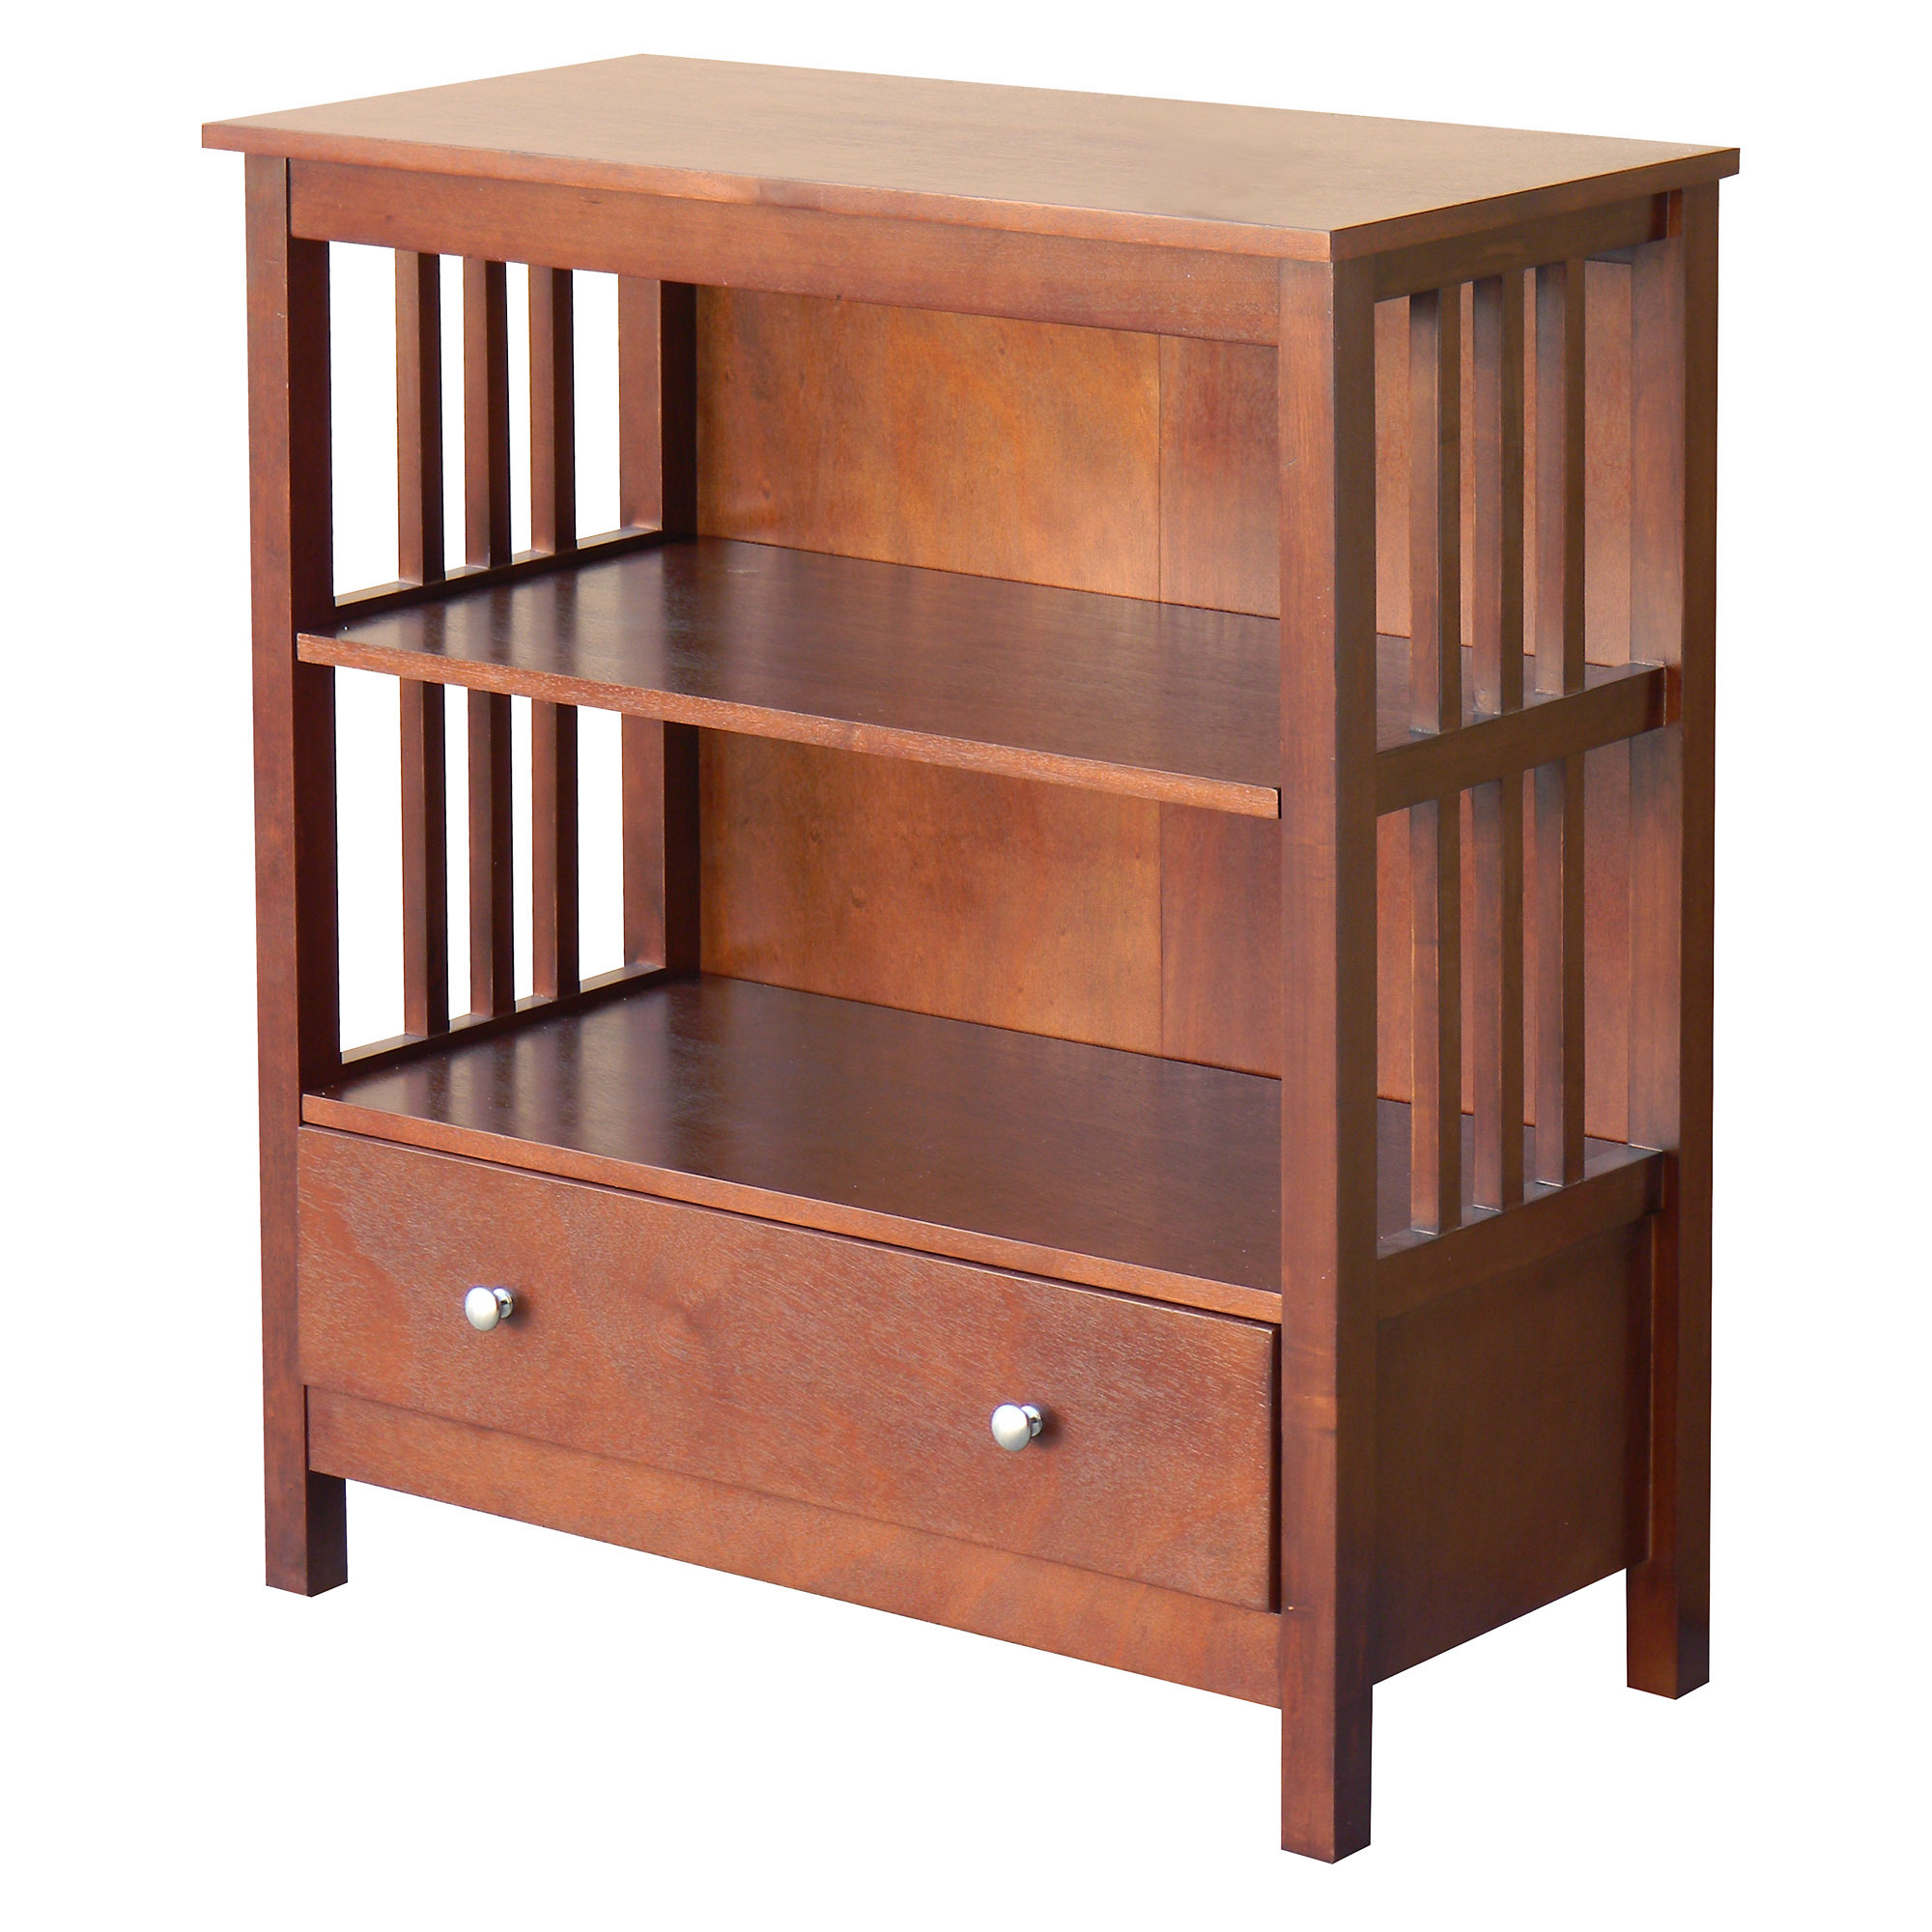 Image of: Famous Mission Style Bookcase